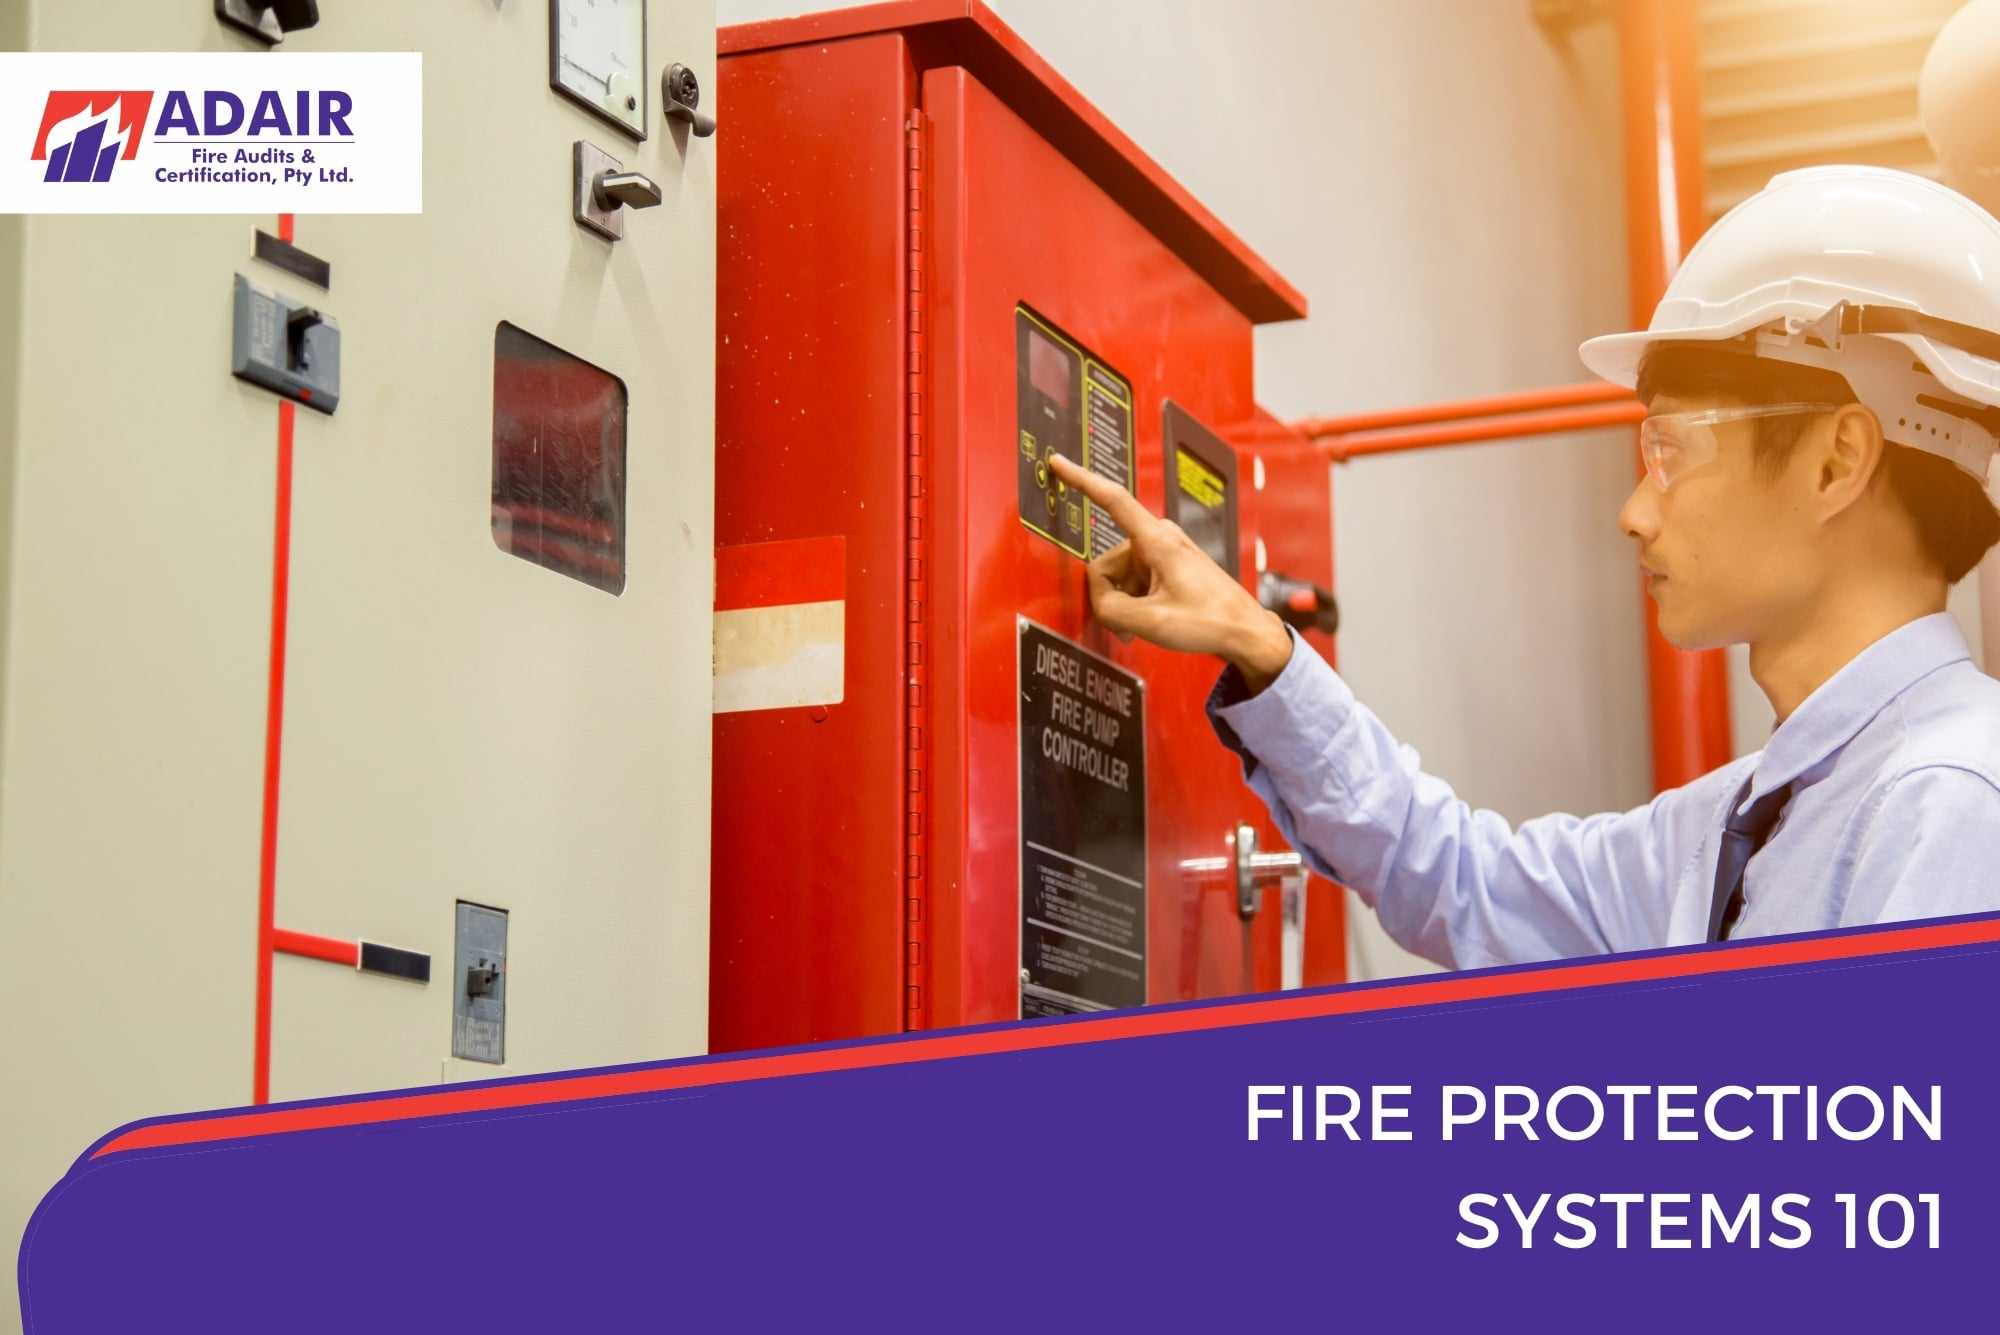 Fire Protection Systems 101 - Fire Protection & Certification - Adair Fire Audits